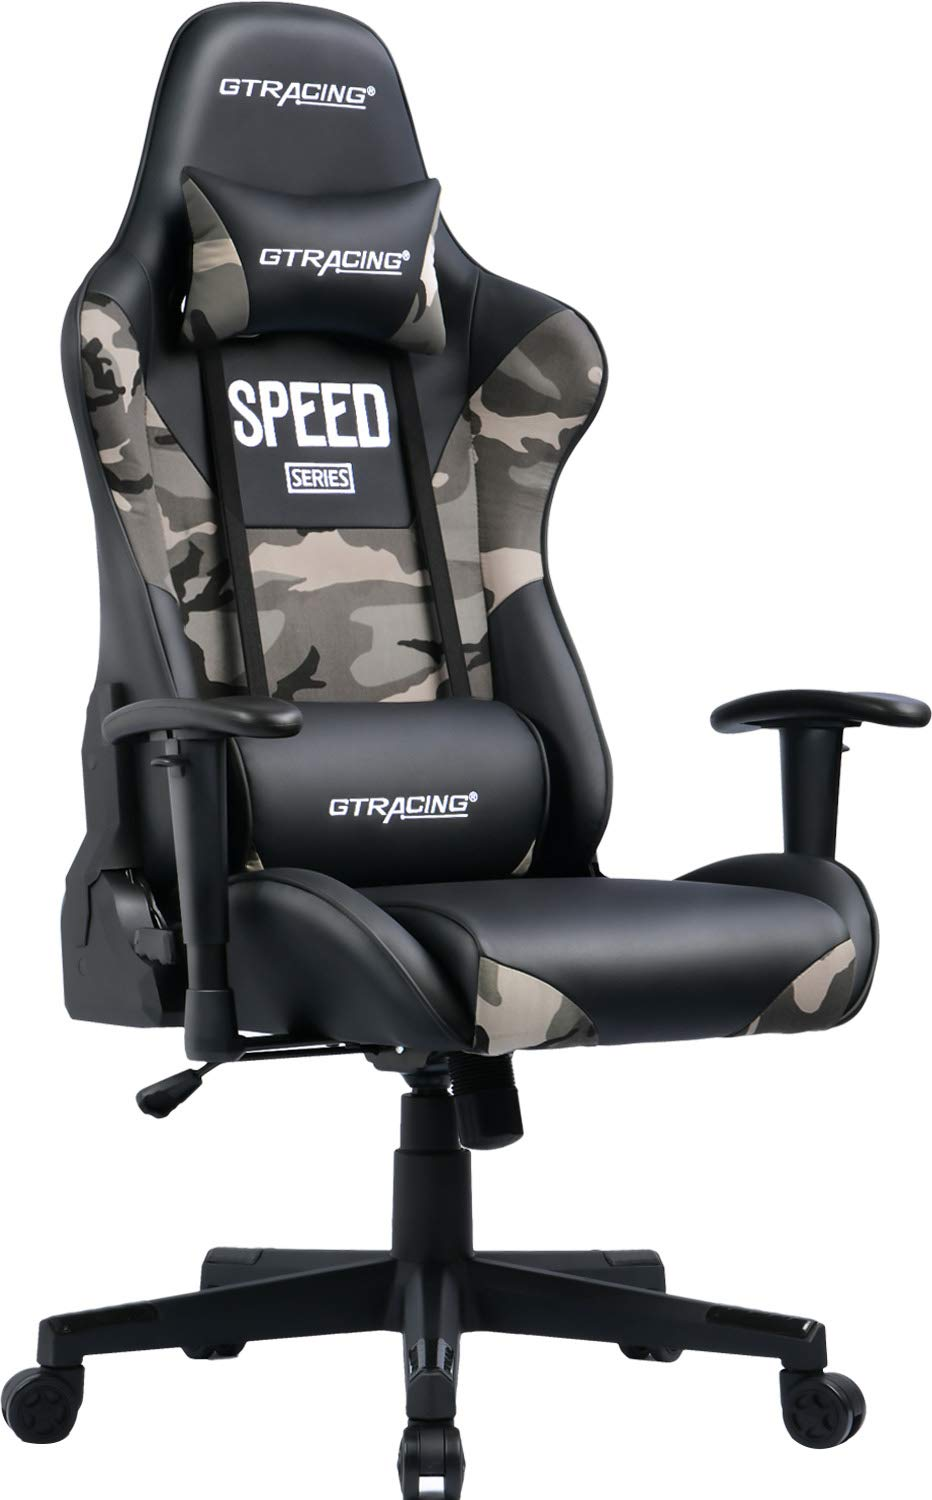 Miraculous Gtracing Camouflage Gaming Chair Computer Racing Chair Pu Fabric High Back Backrest And Height Adjustable E Sports Ergonomic Chair With Pillows Gt000 Machost Co Dining Chair Design Ideas Machostcouk